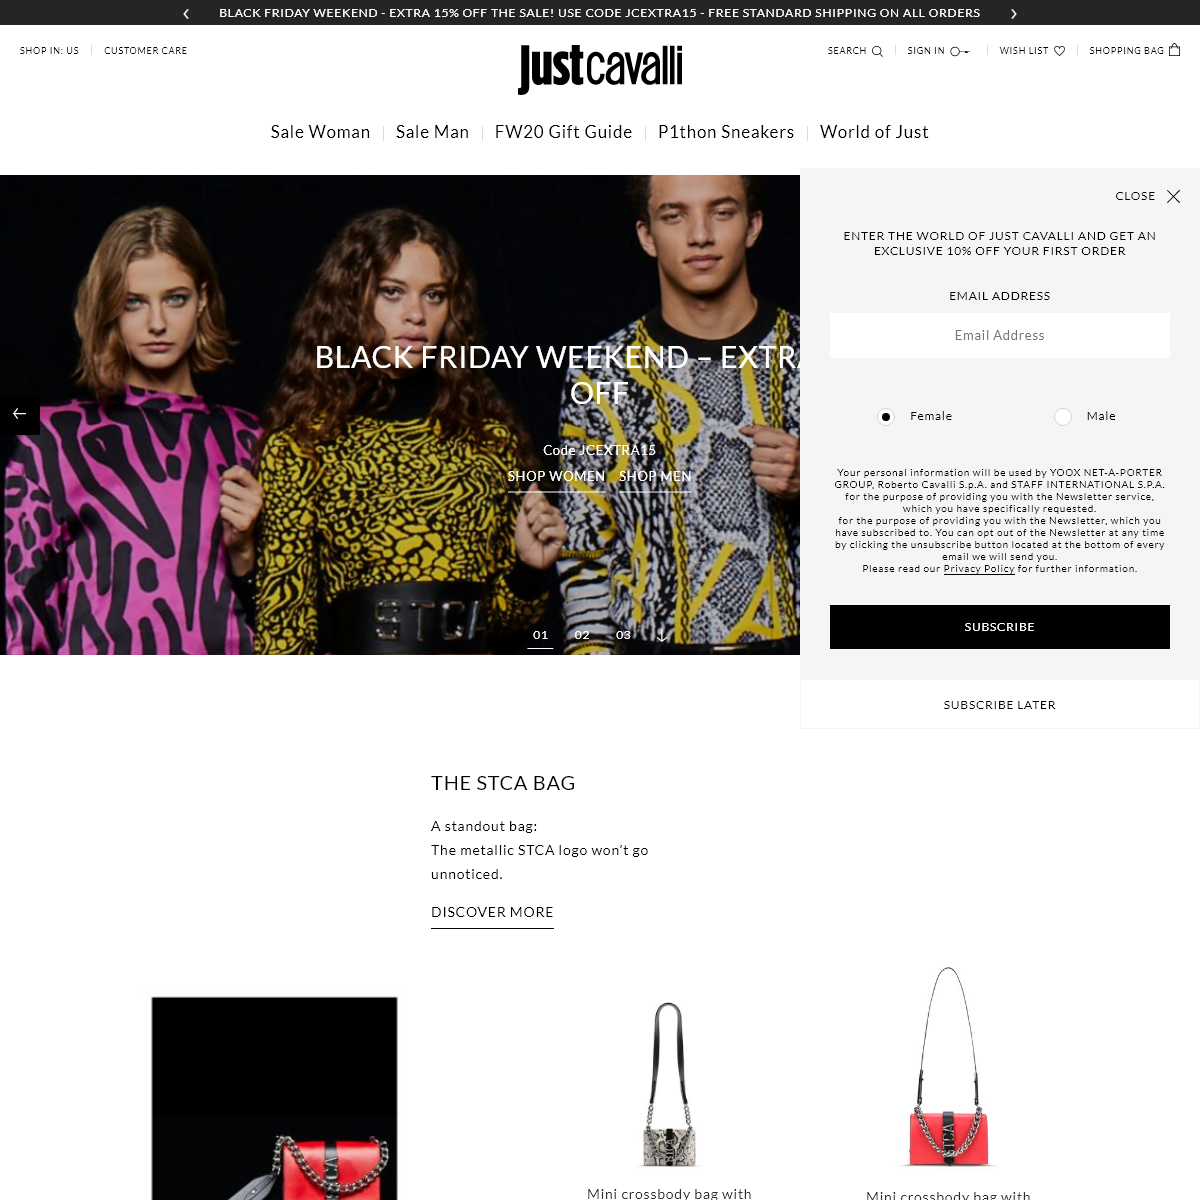 Just Cavalli Clothing & Accessories - Official Online Store